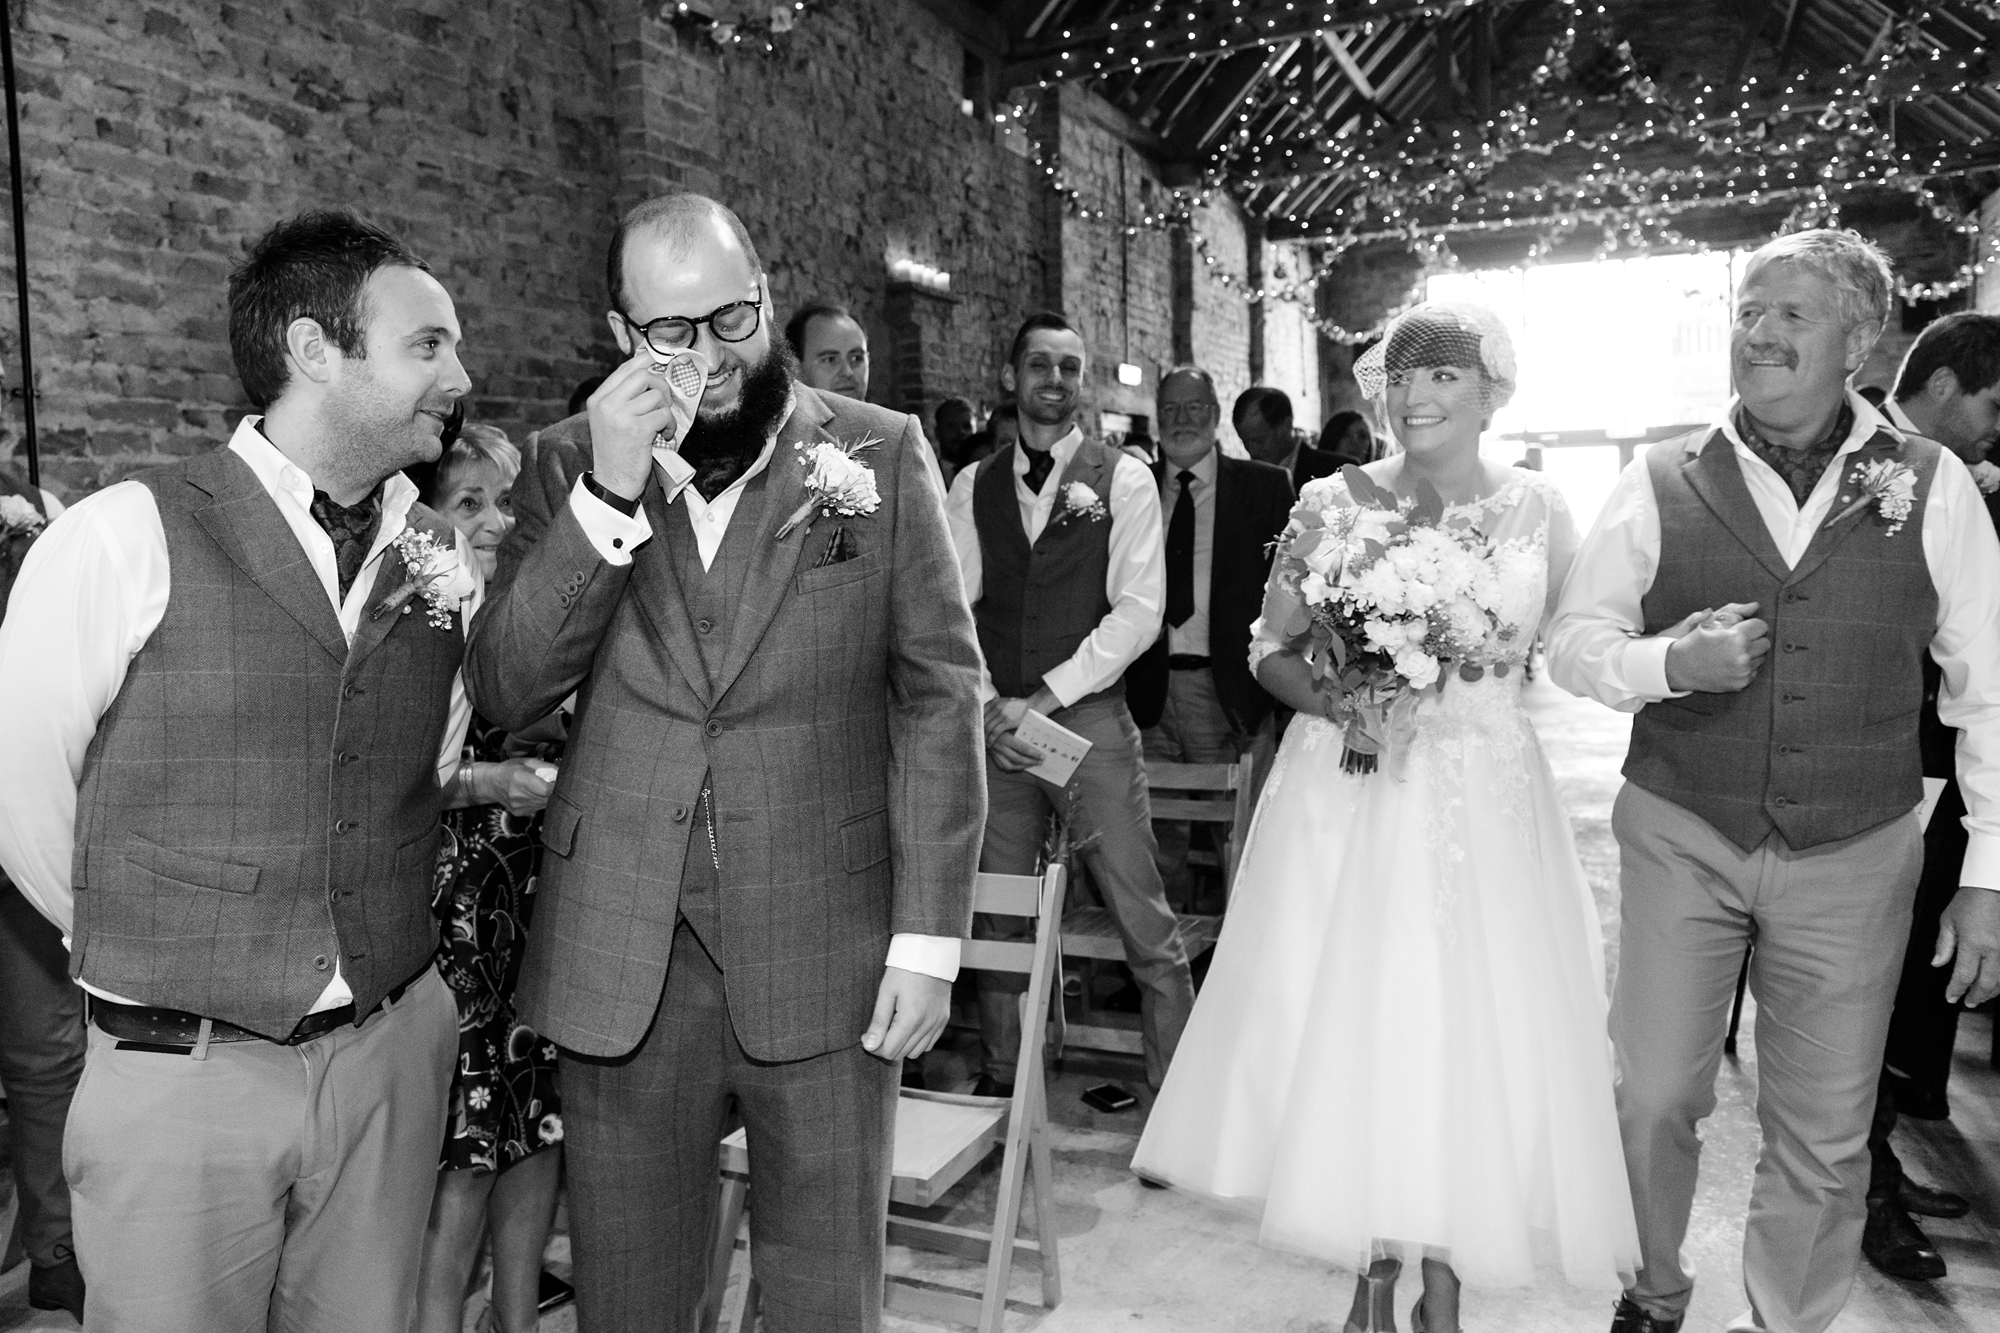 York Wedding Photography at Barmbyfield Barns bride walks up to top of aisle as groom cries